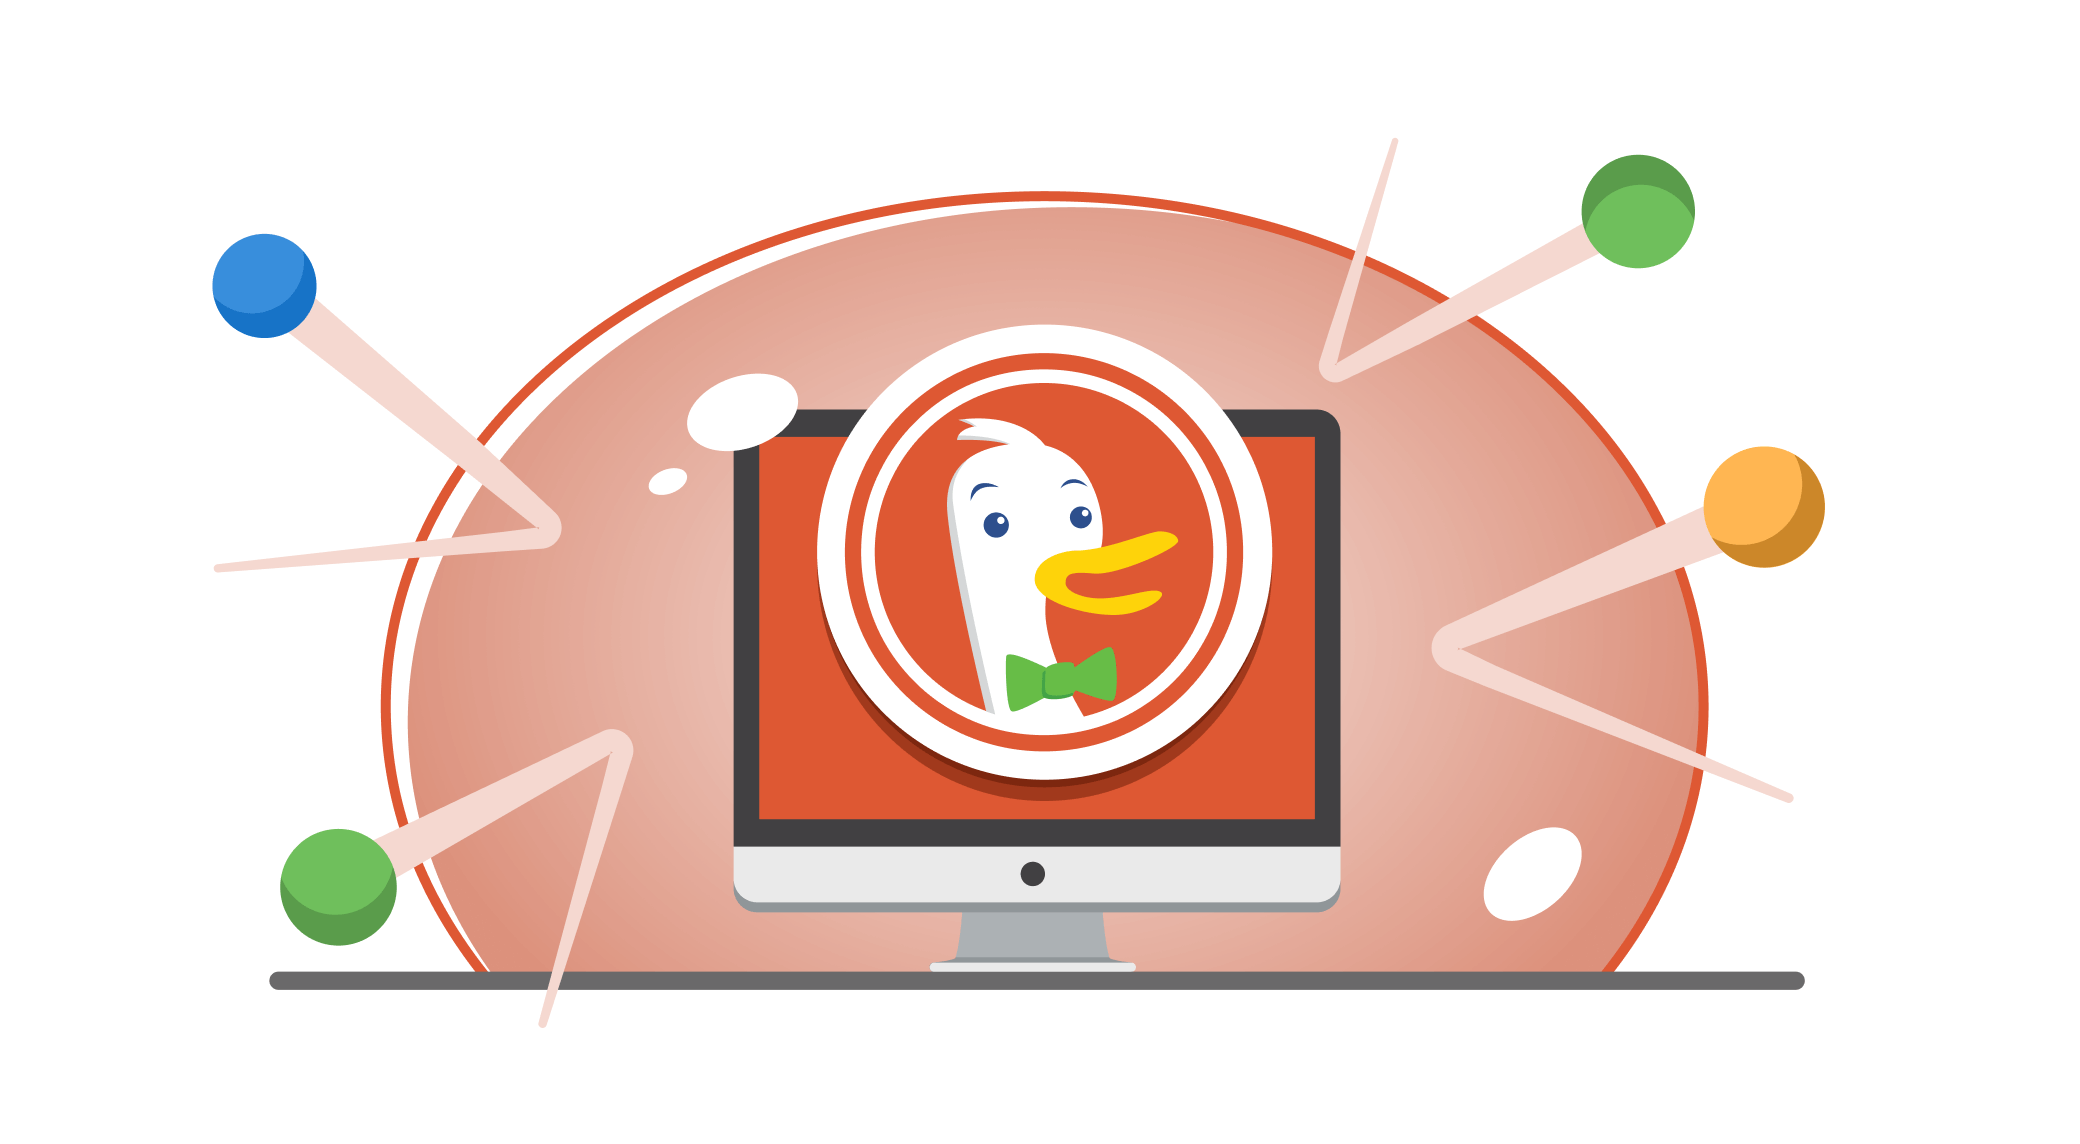 Most Browser Tracking Protection Doesn't Actually Stop Tracking by Default, but We Can Help